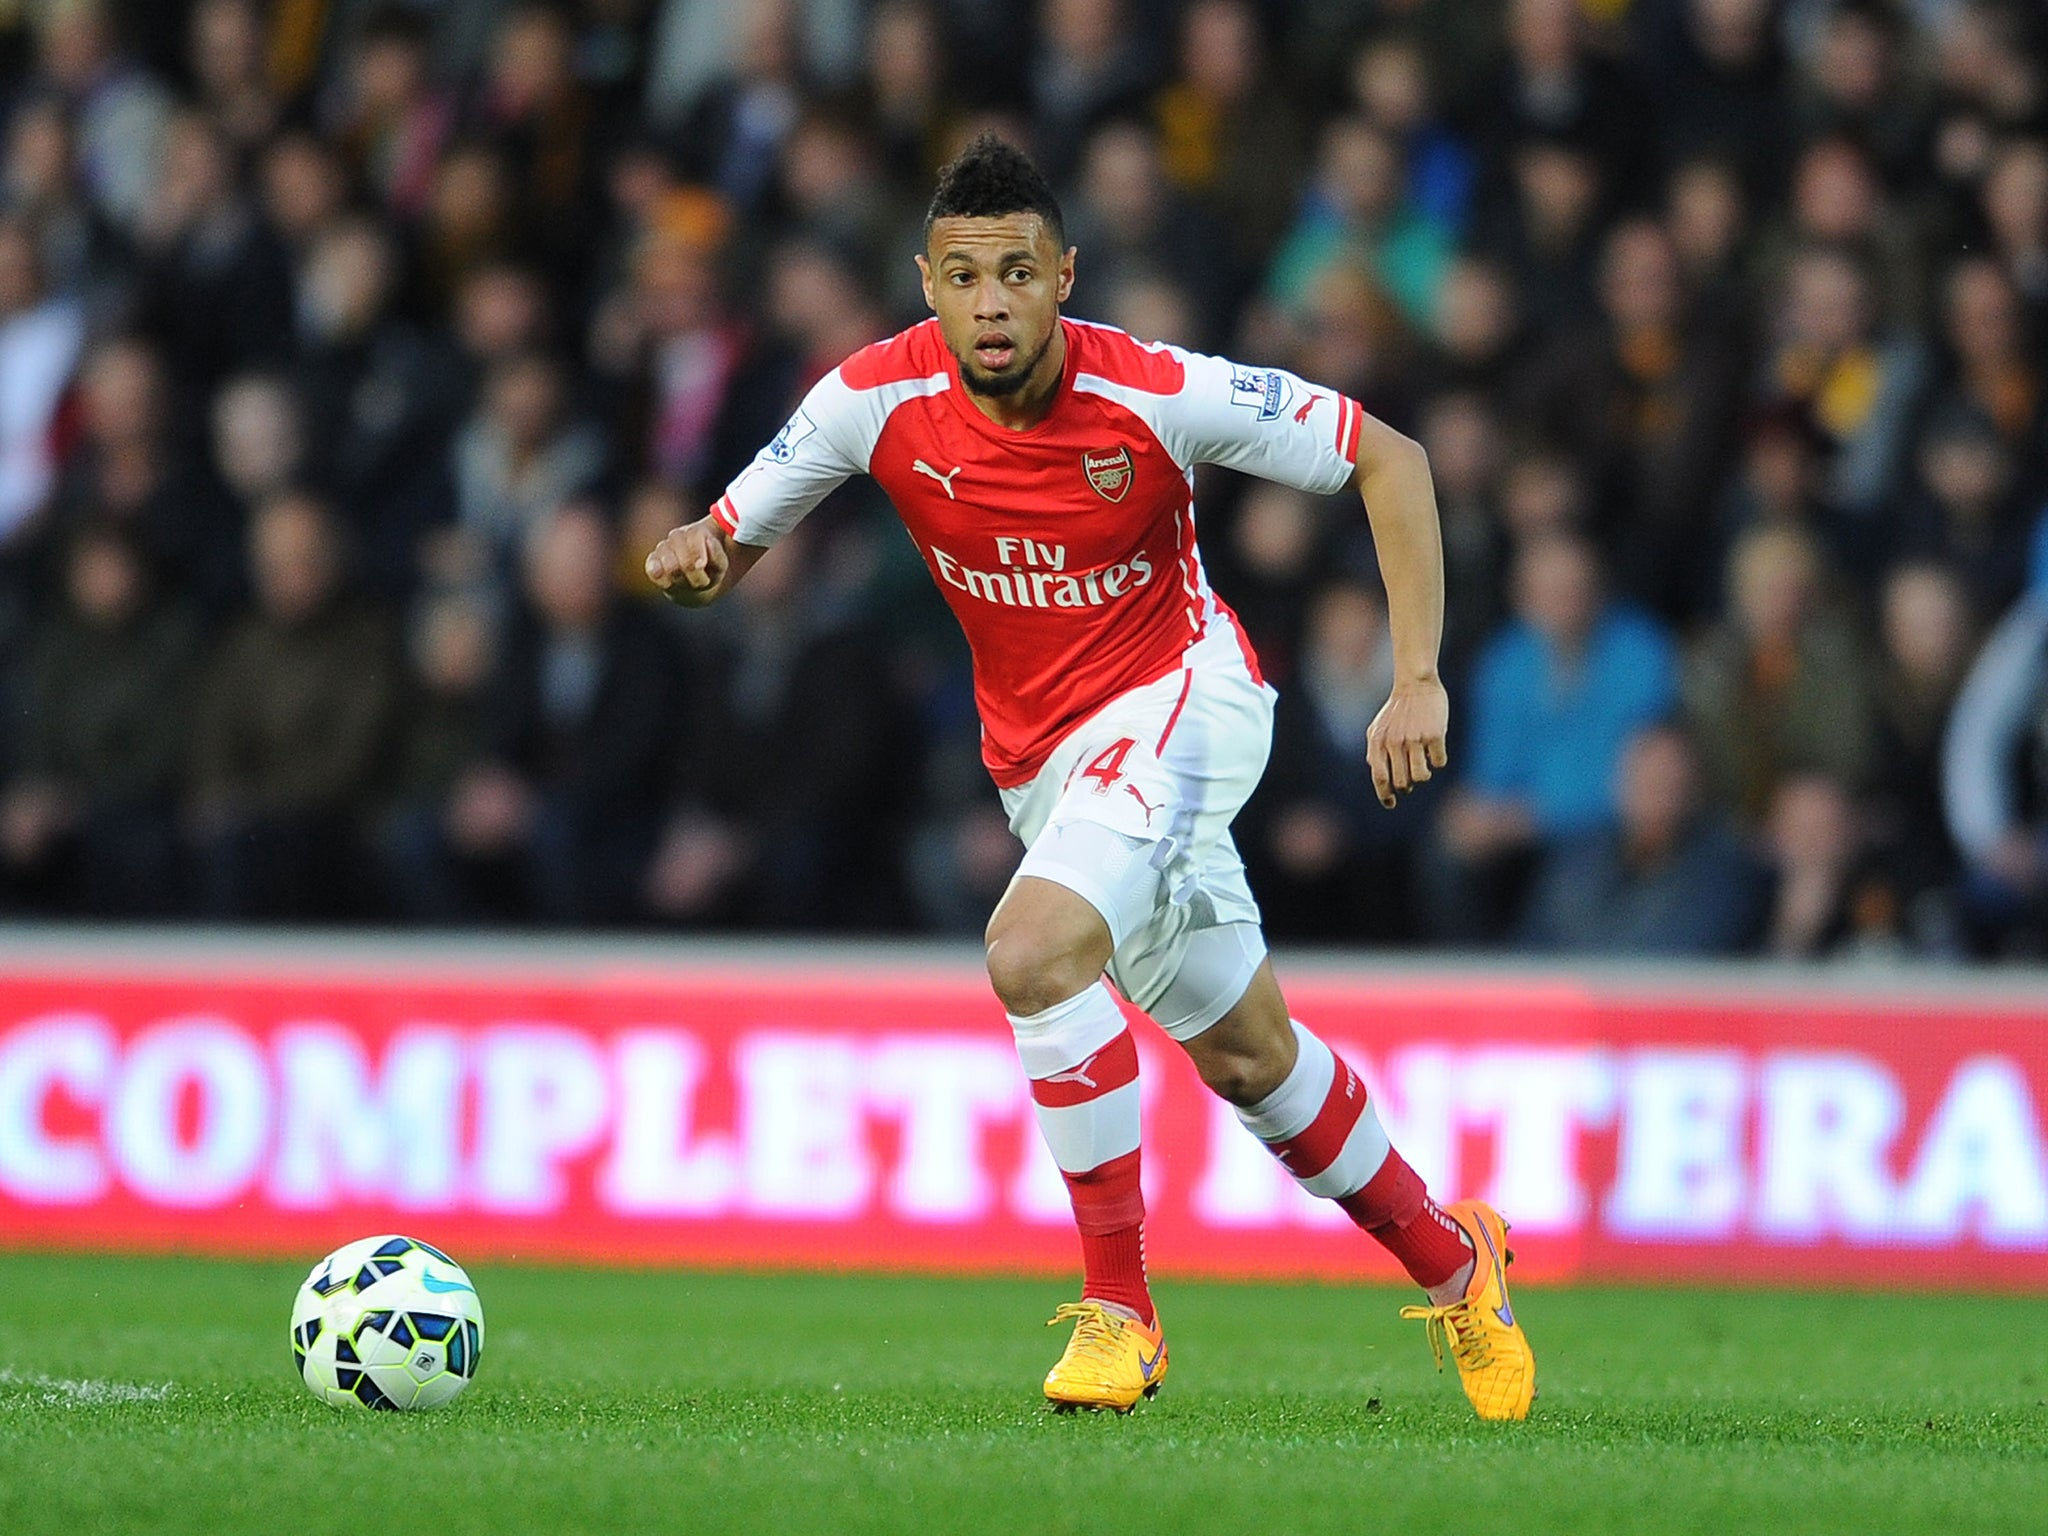 Image result for frencis coquelin